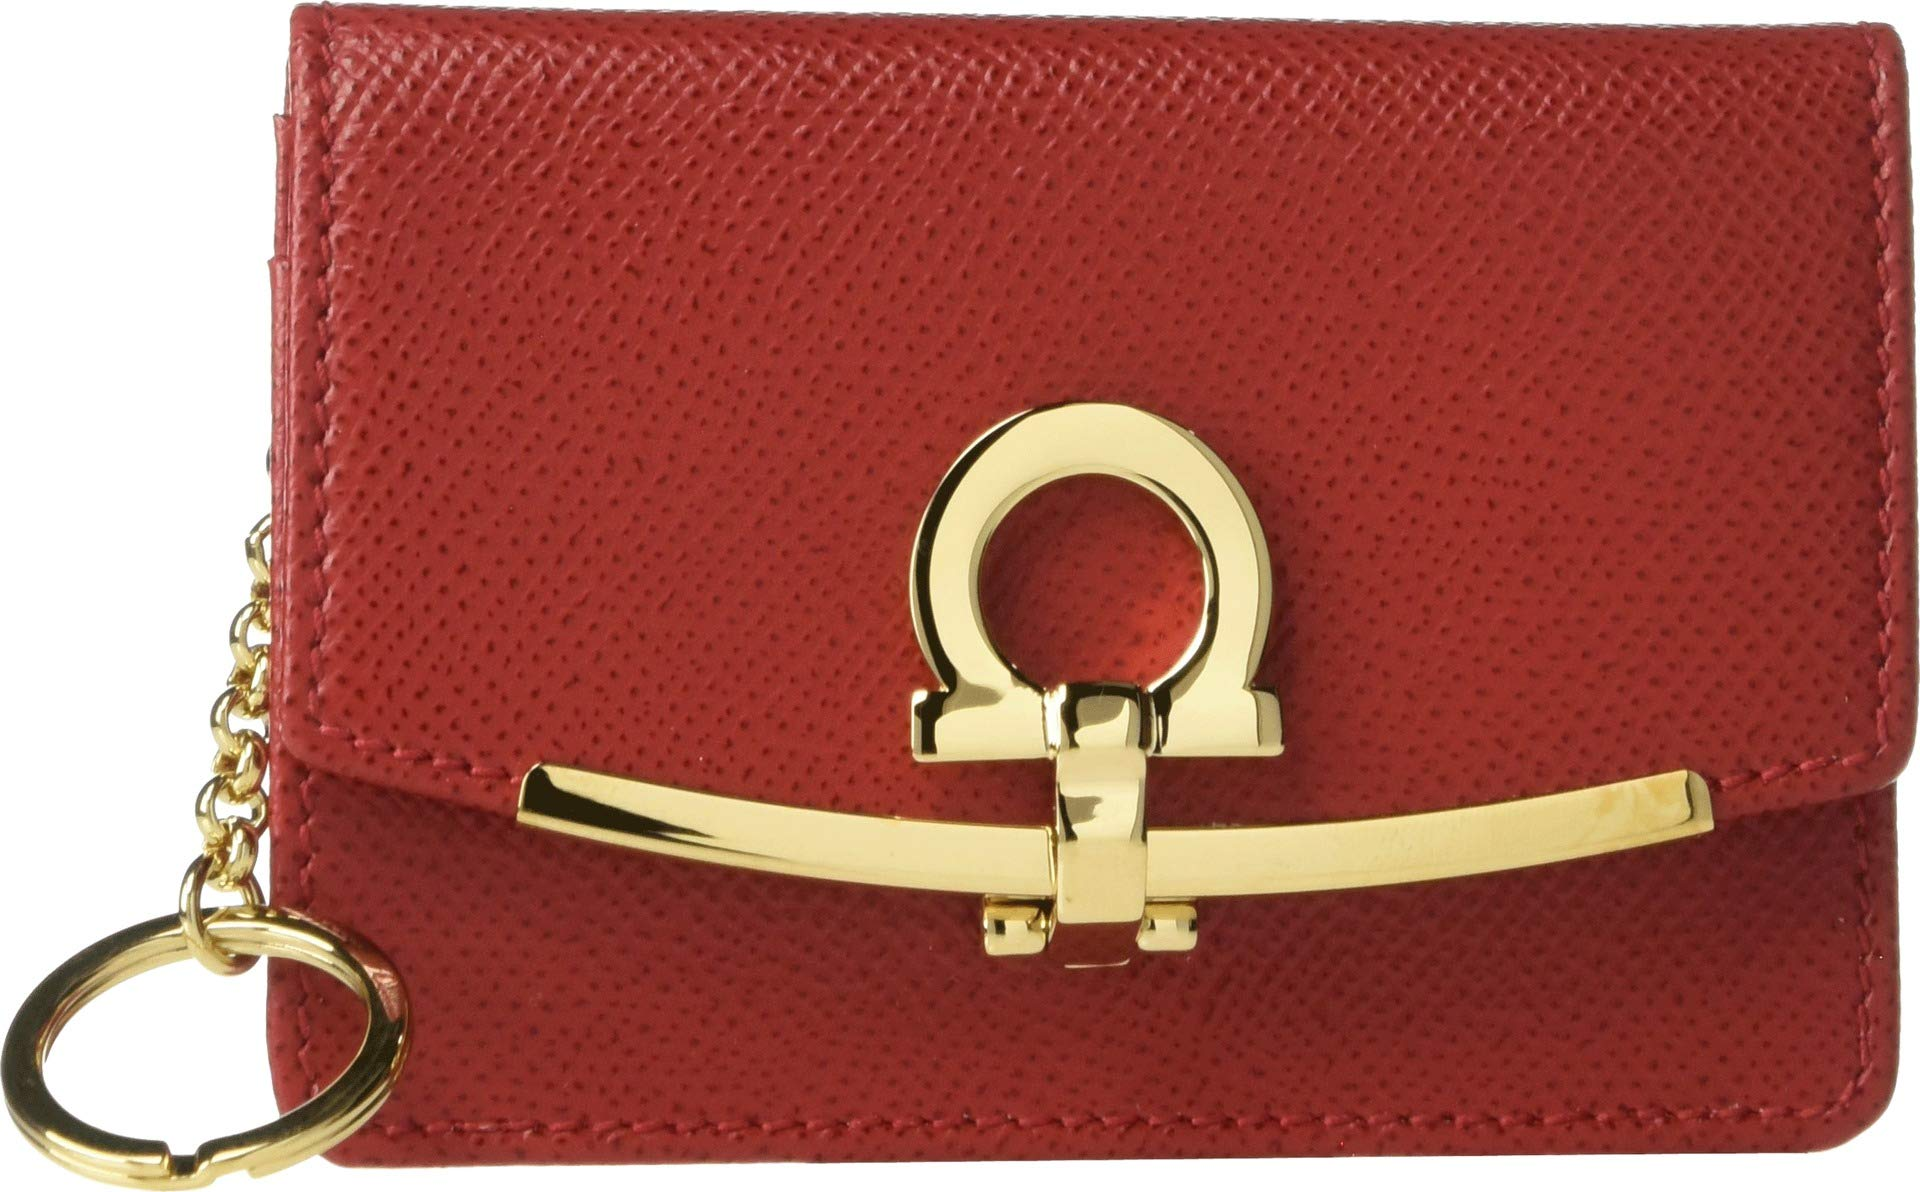 Salvatore Ferragamo Women's Gancio Clip Card Case, Lipstick, Red, One Size